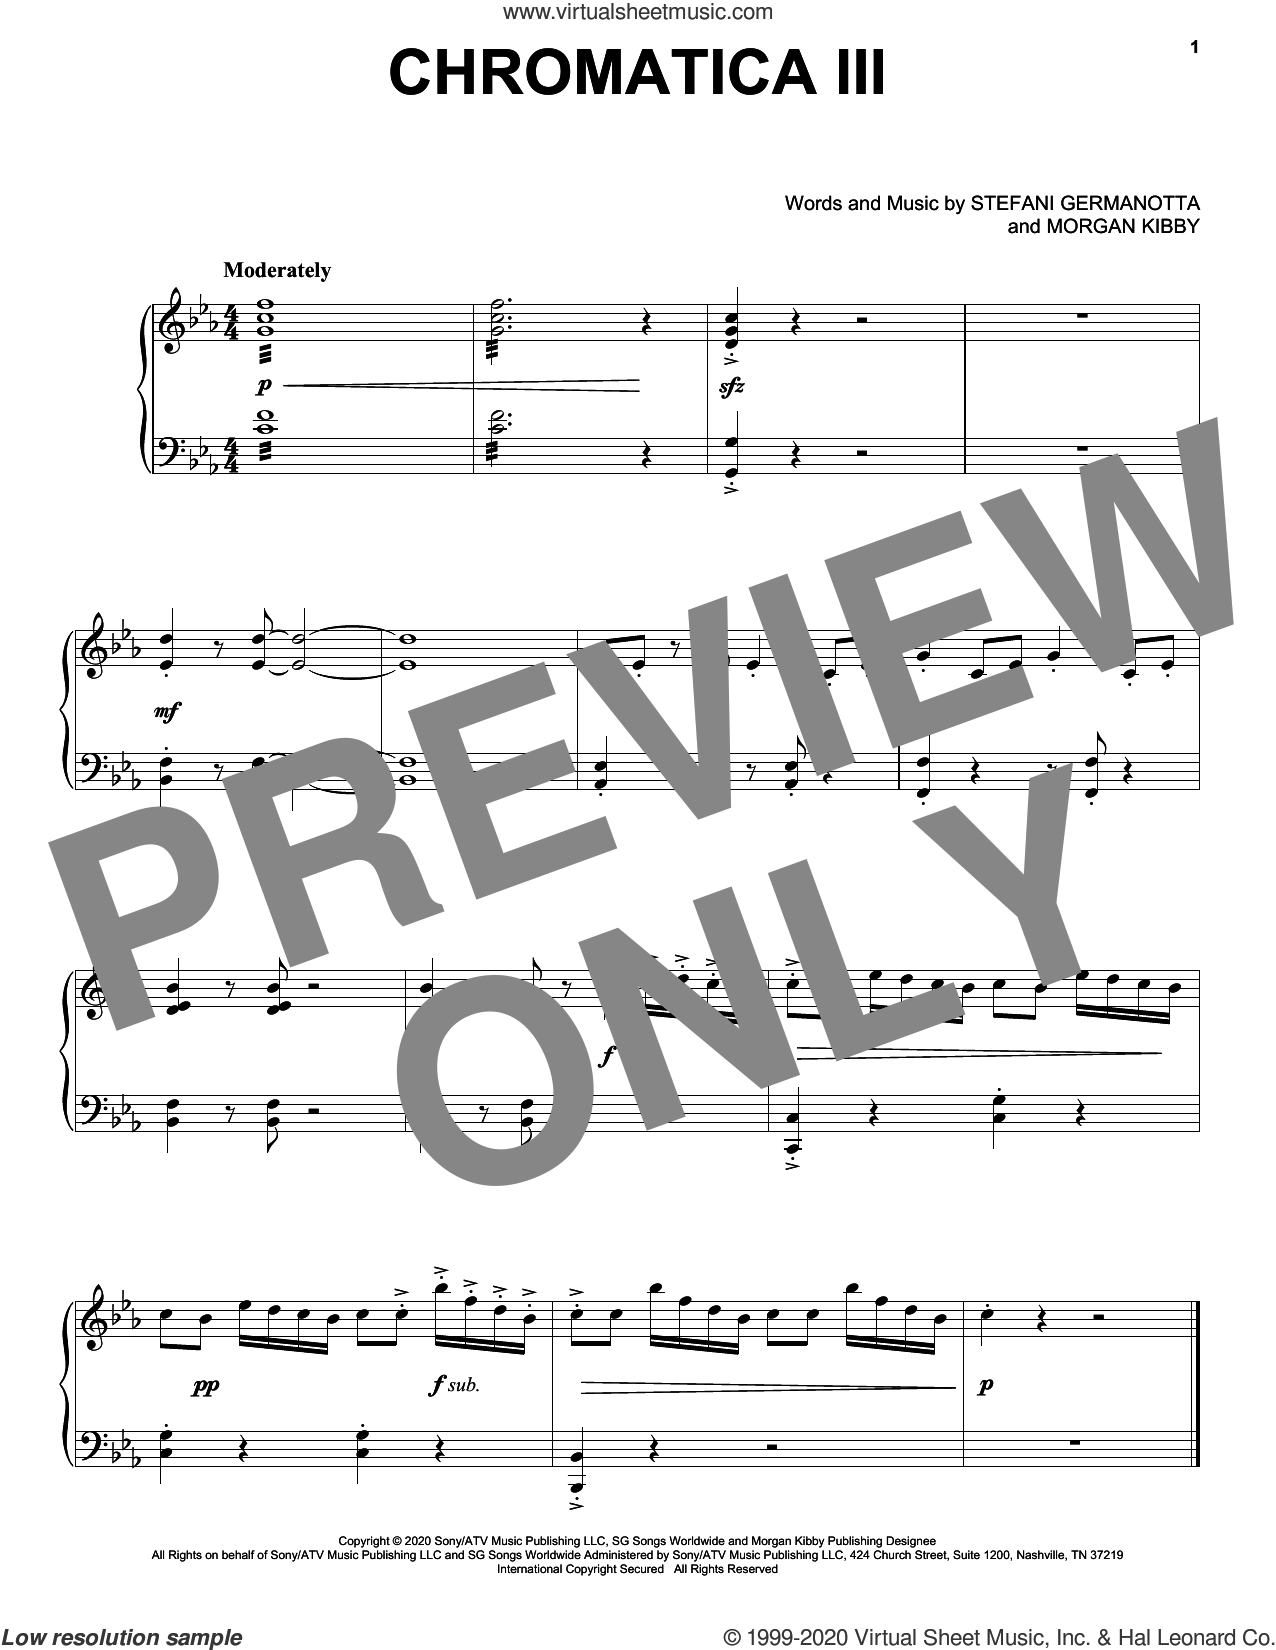 Chromatica III sheet music for voice, piano or guitar by Lady Gaga and Morgan Kibby, intermediate skill level